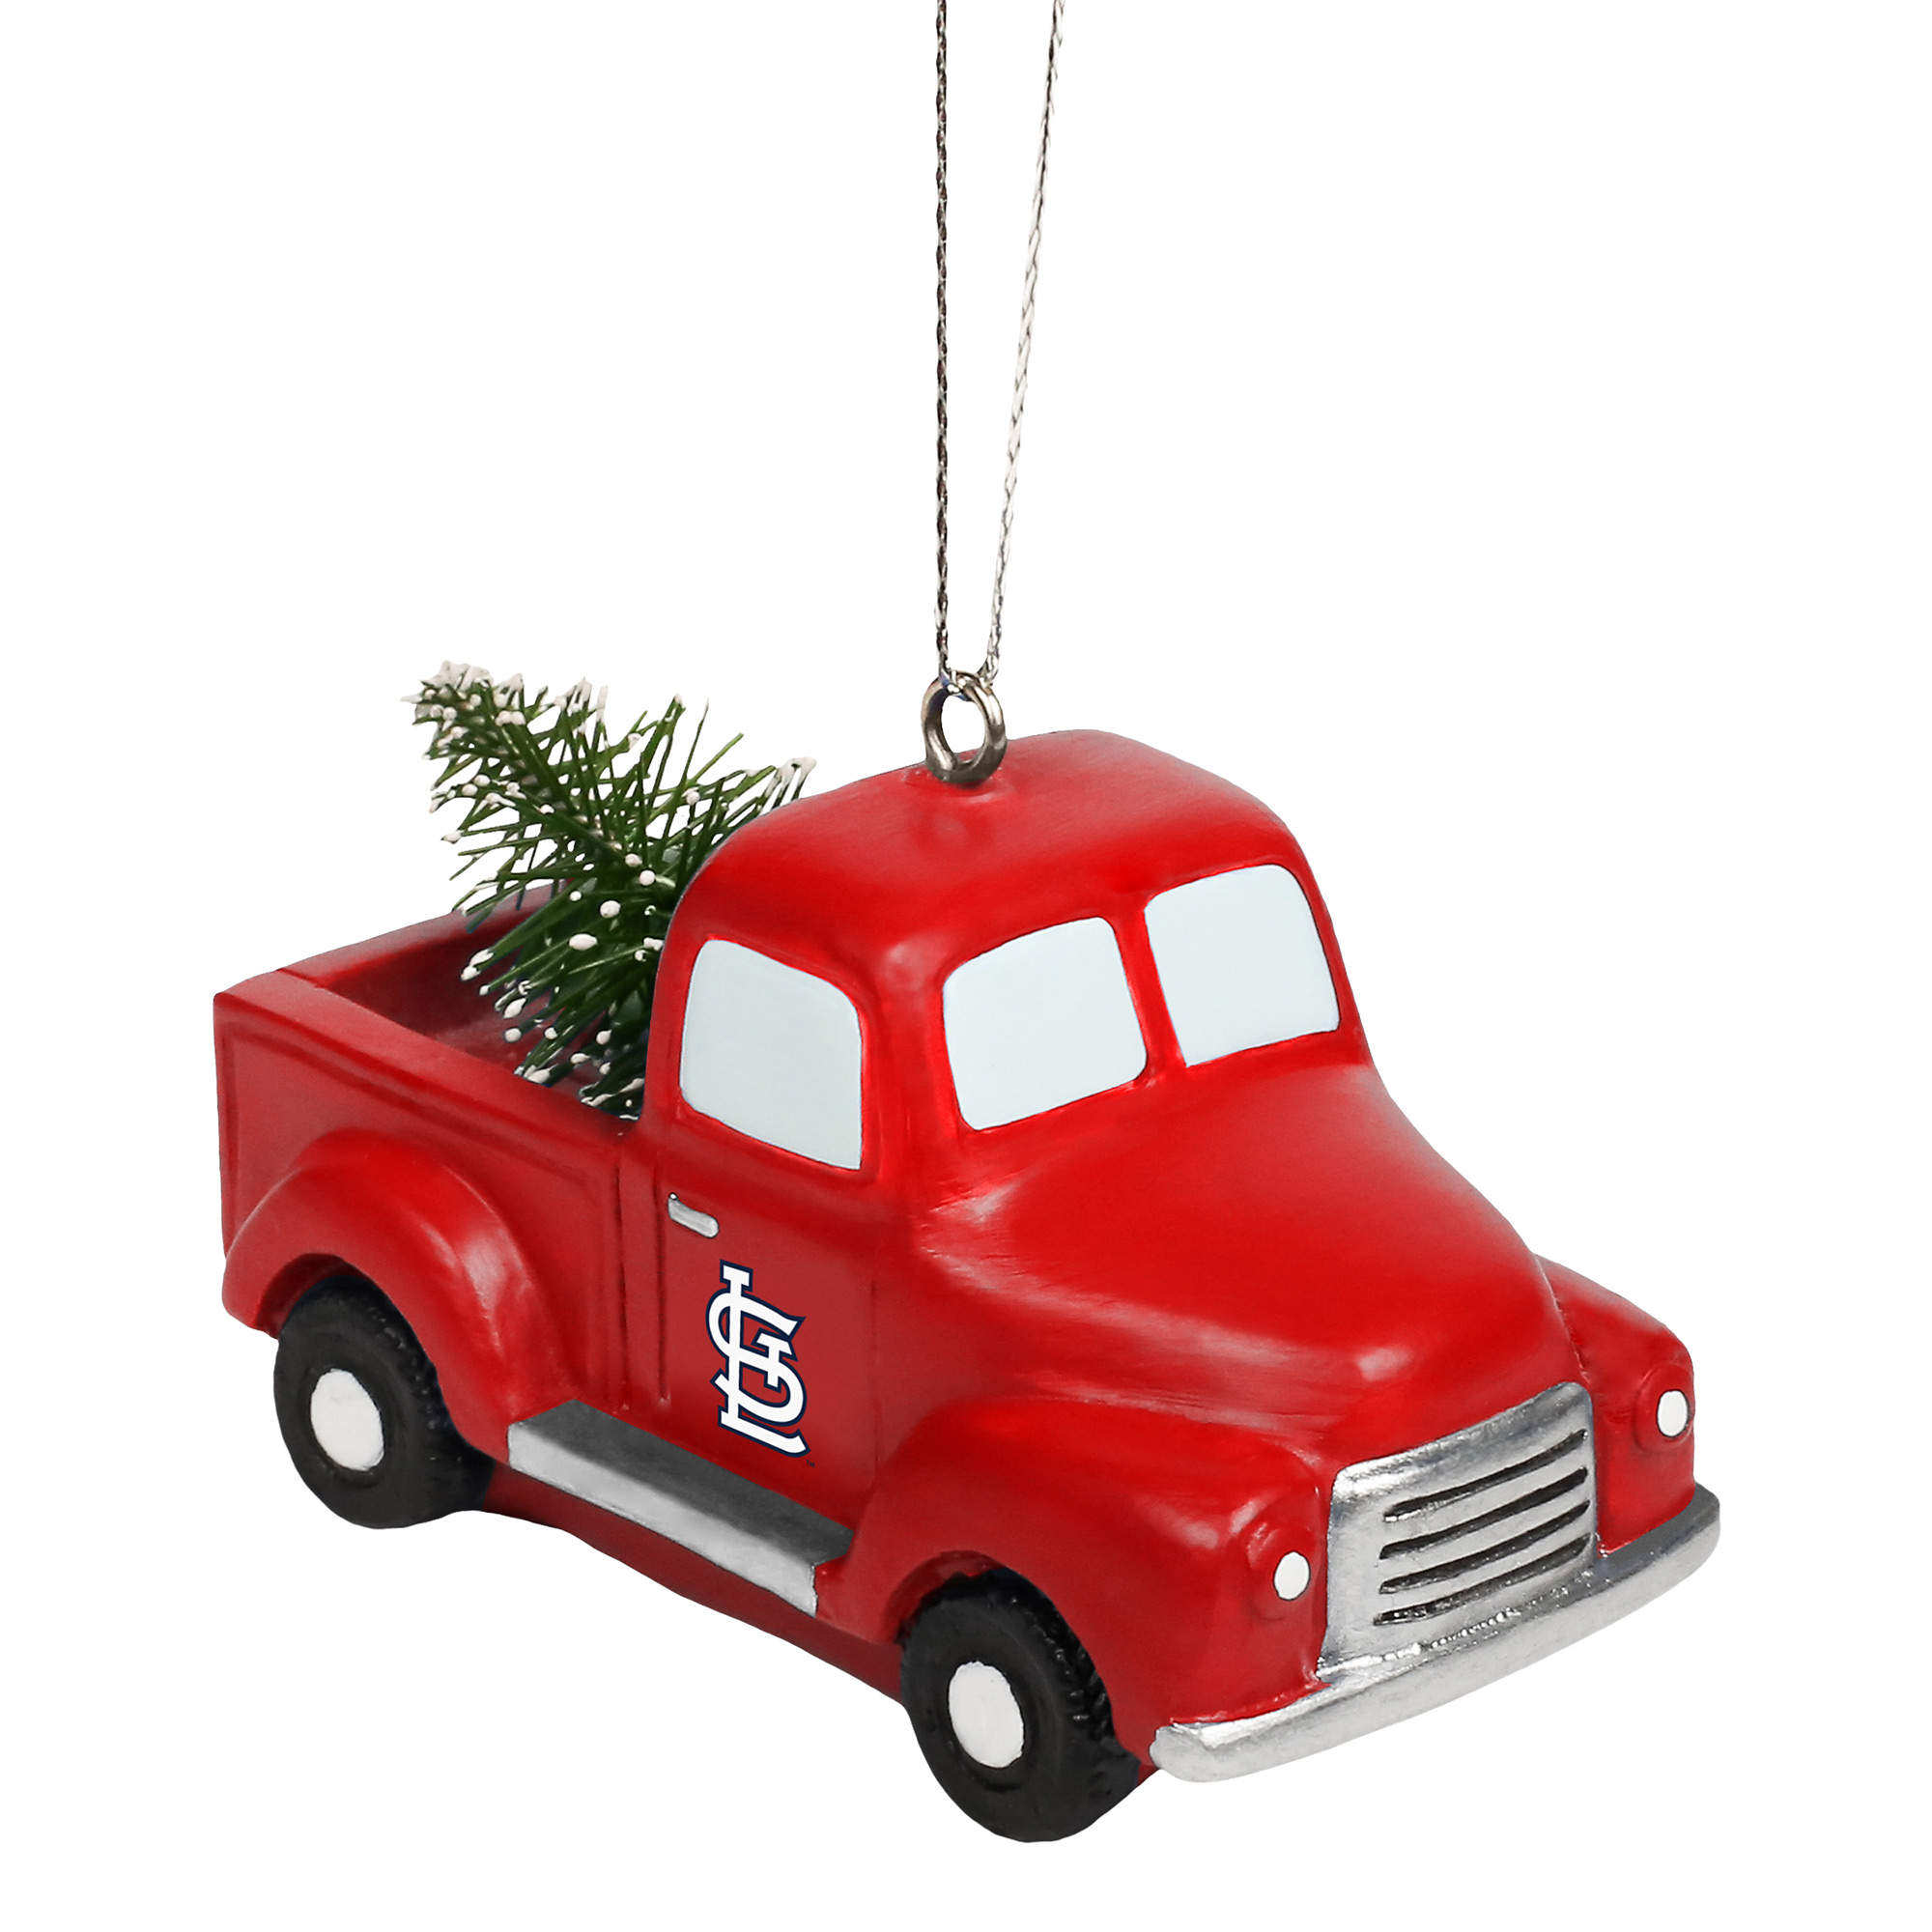 St. Louis Cardinals Truck With Tree Ornament - No Size